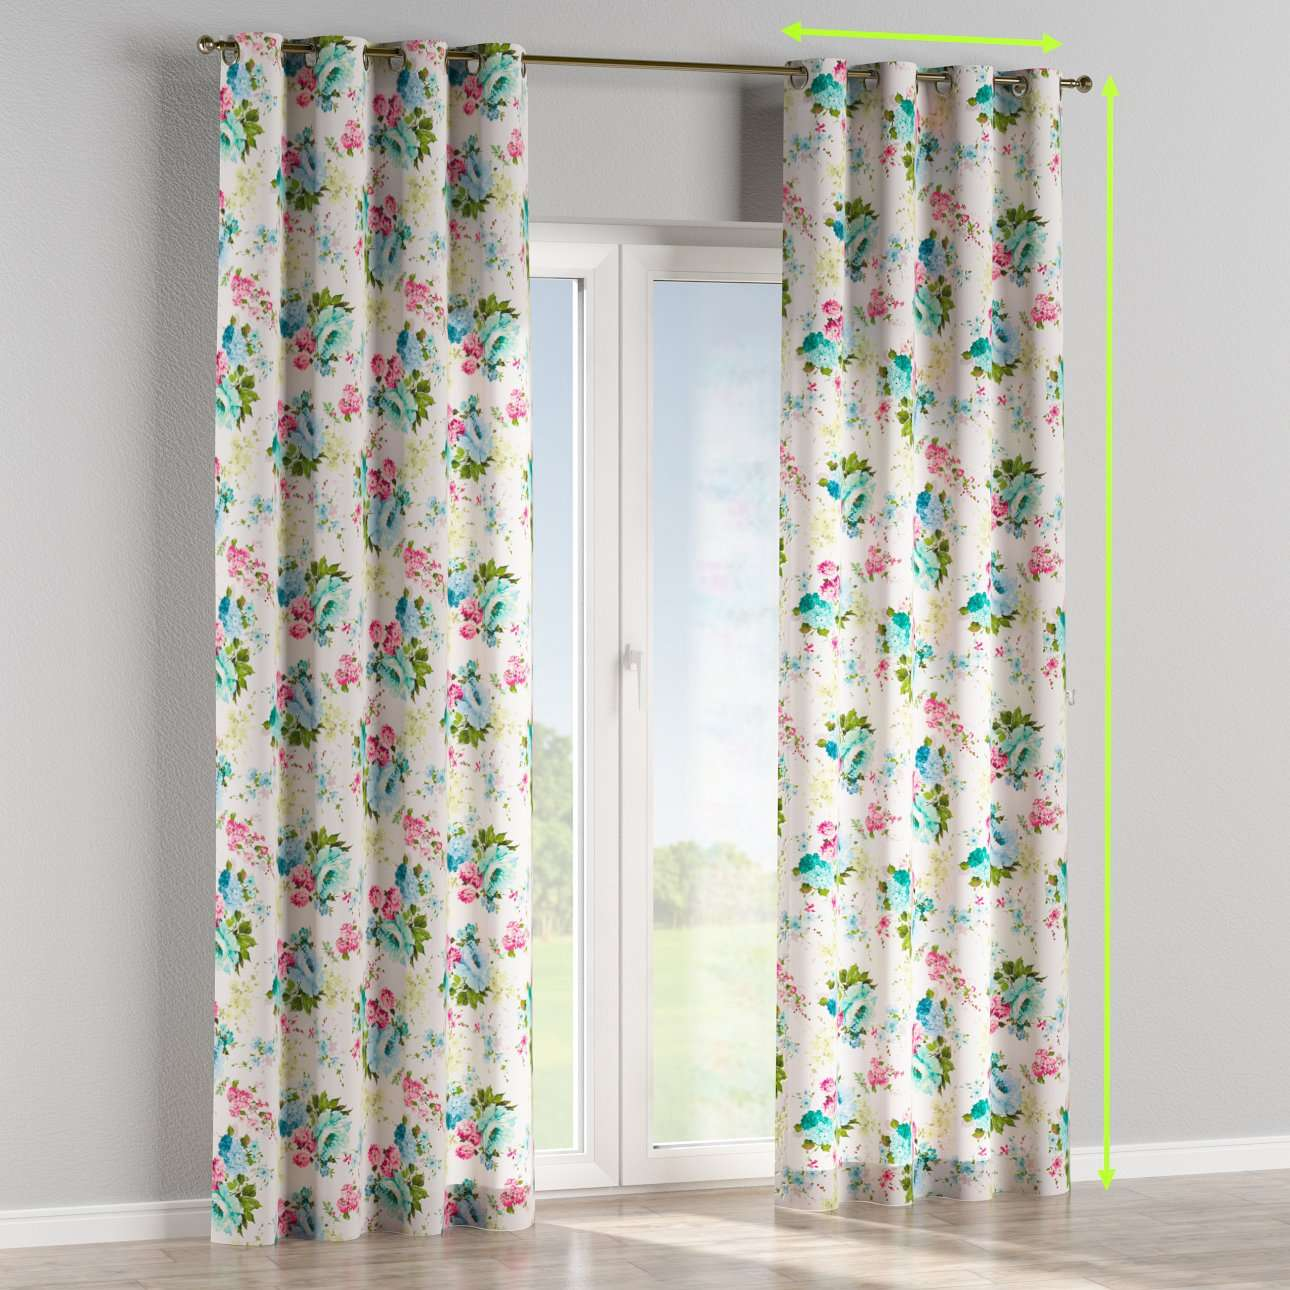 Eyelet curtains in collection Monet, fabric: 140-02